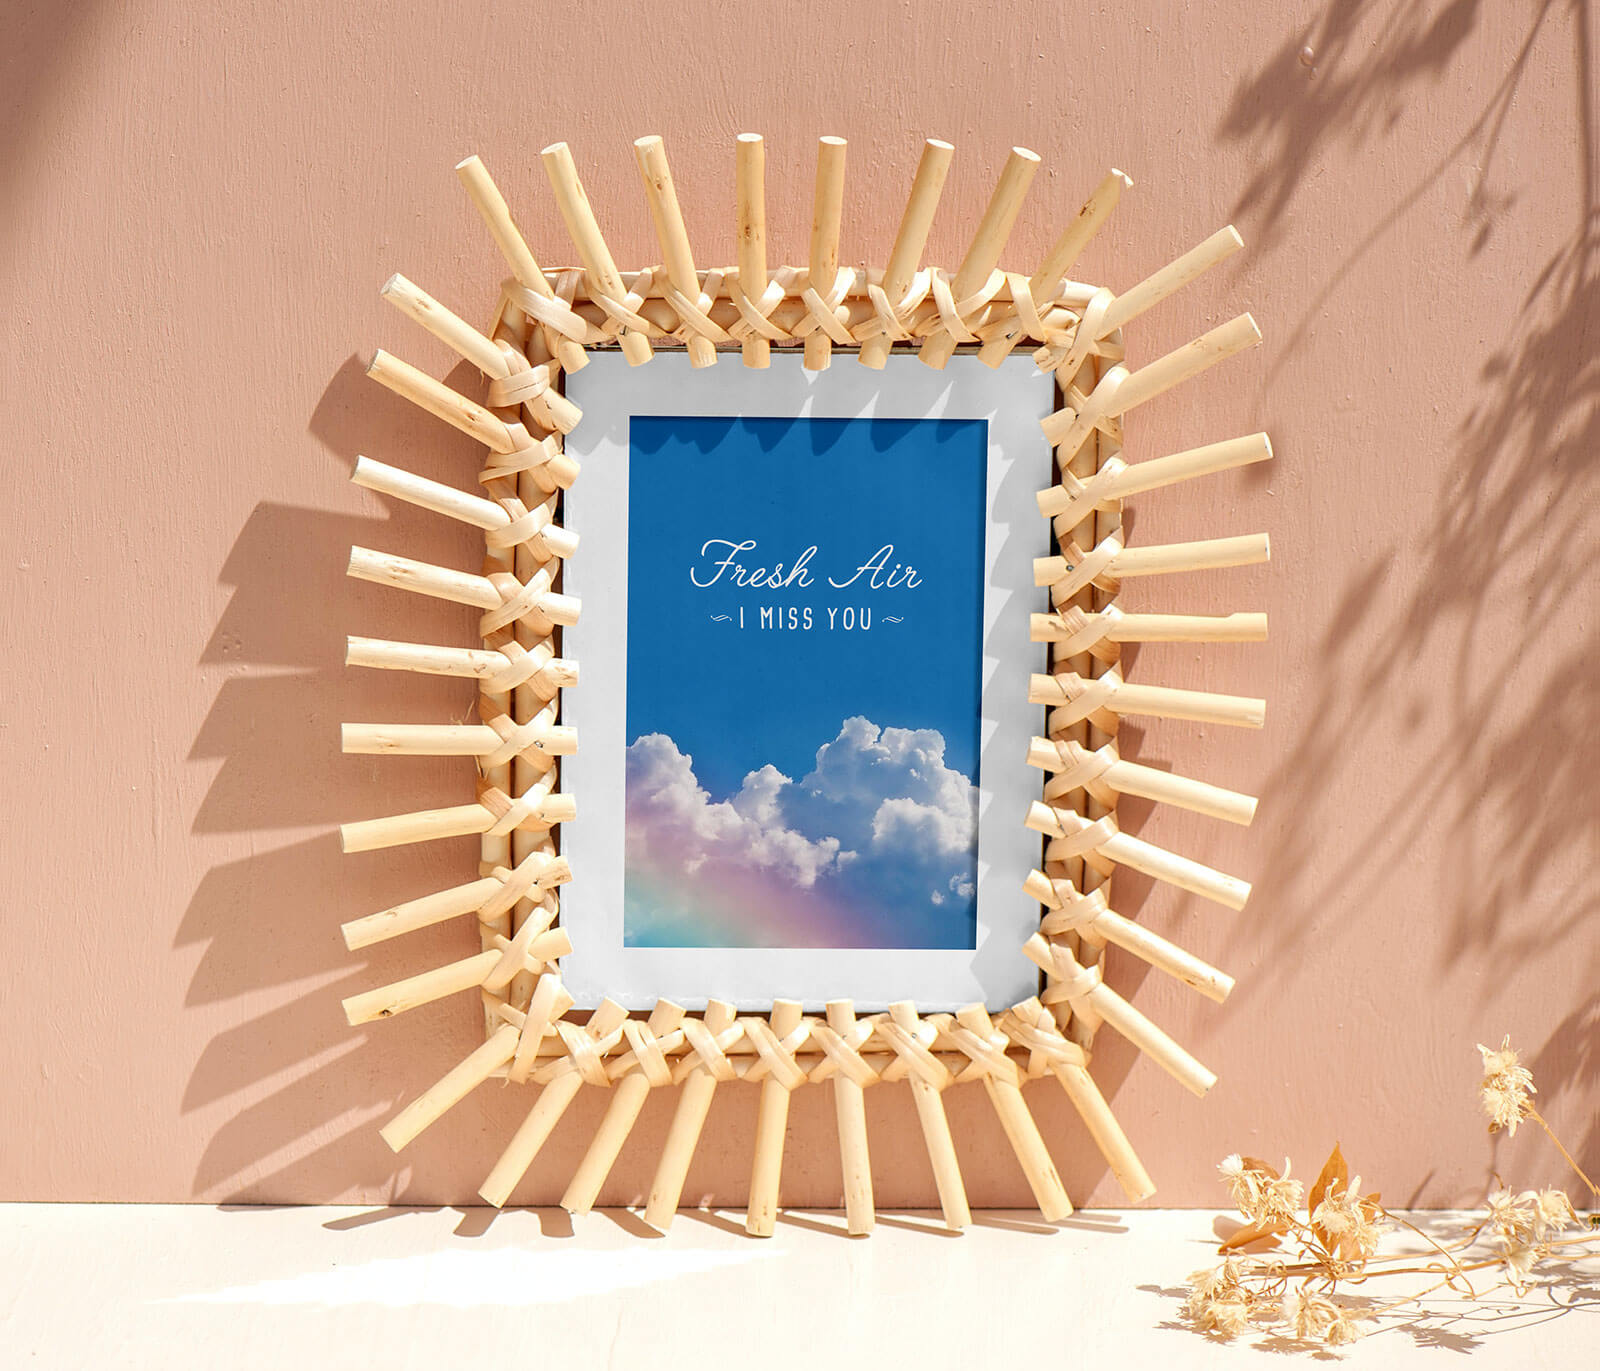 Free-Wooden-Photo-Frame-Poster-Mockup-PSD